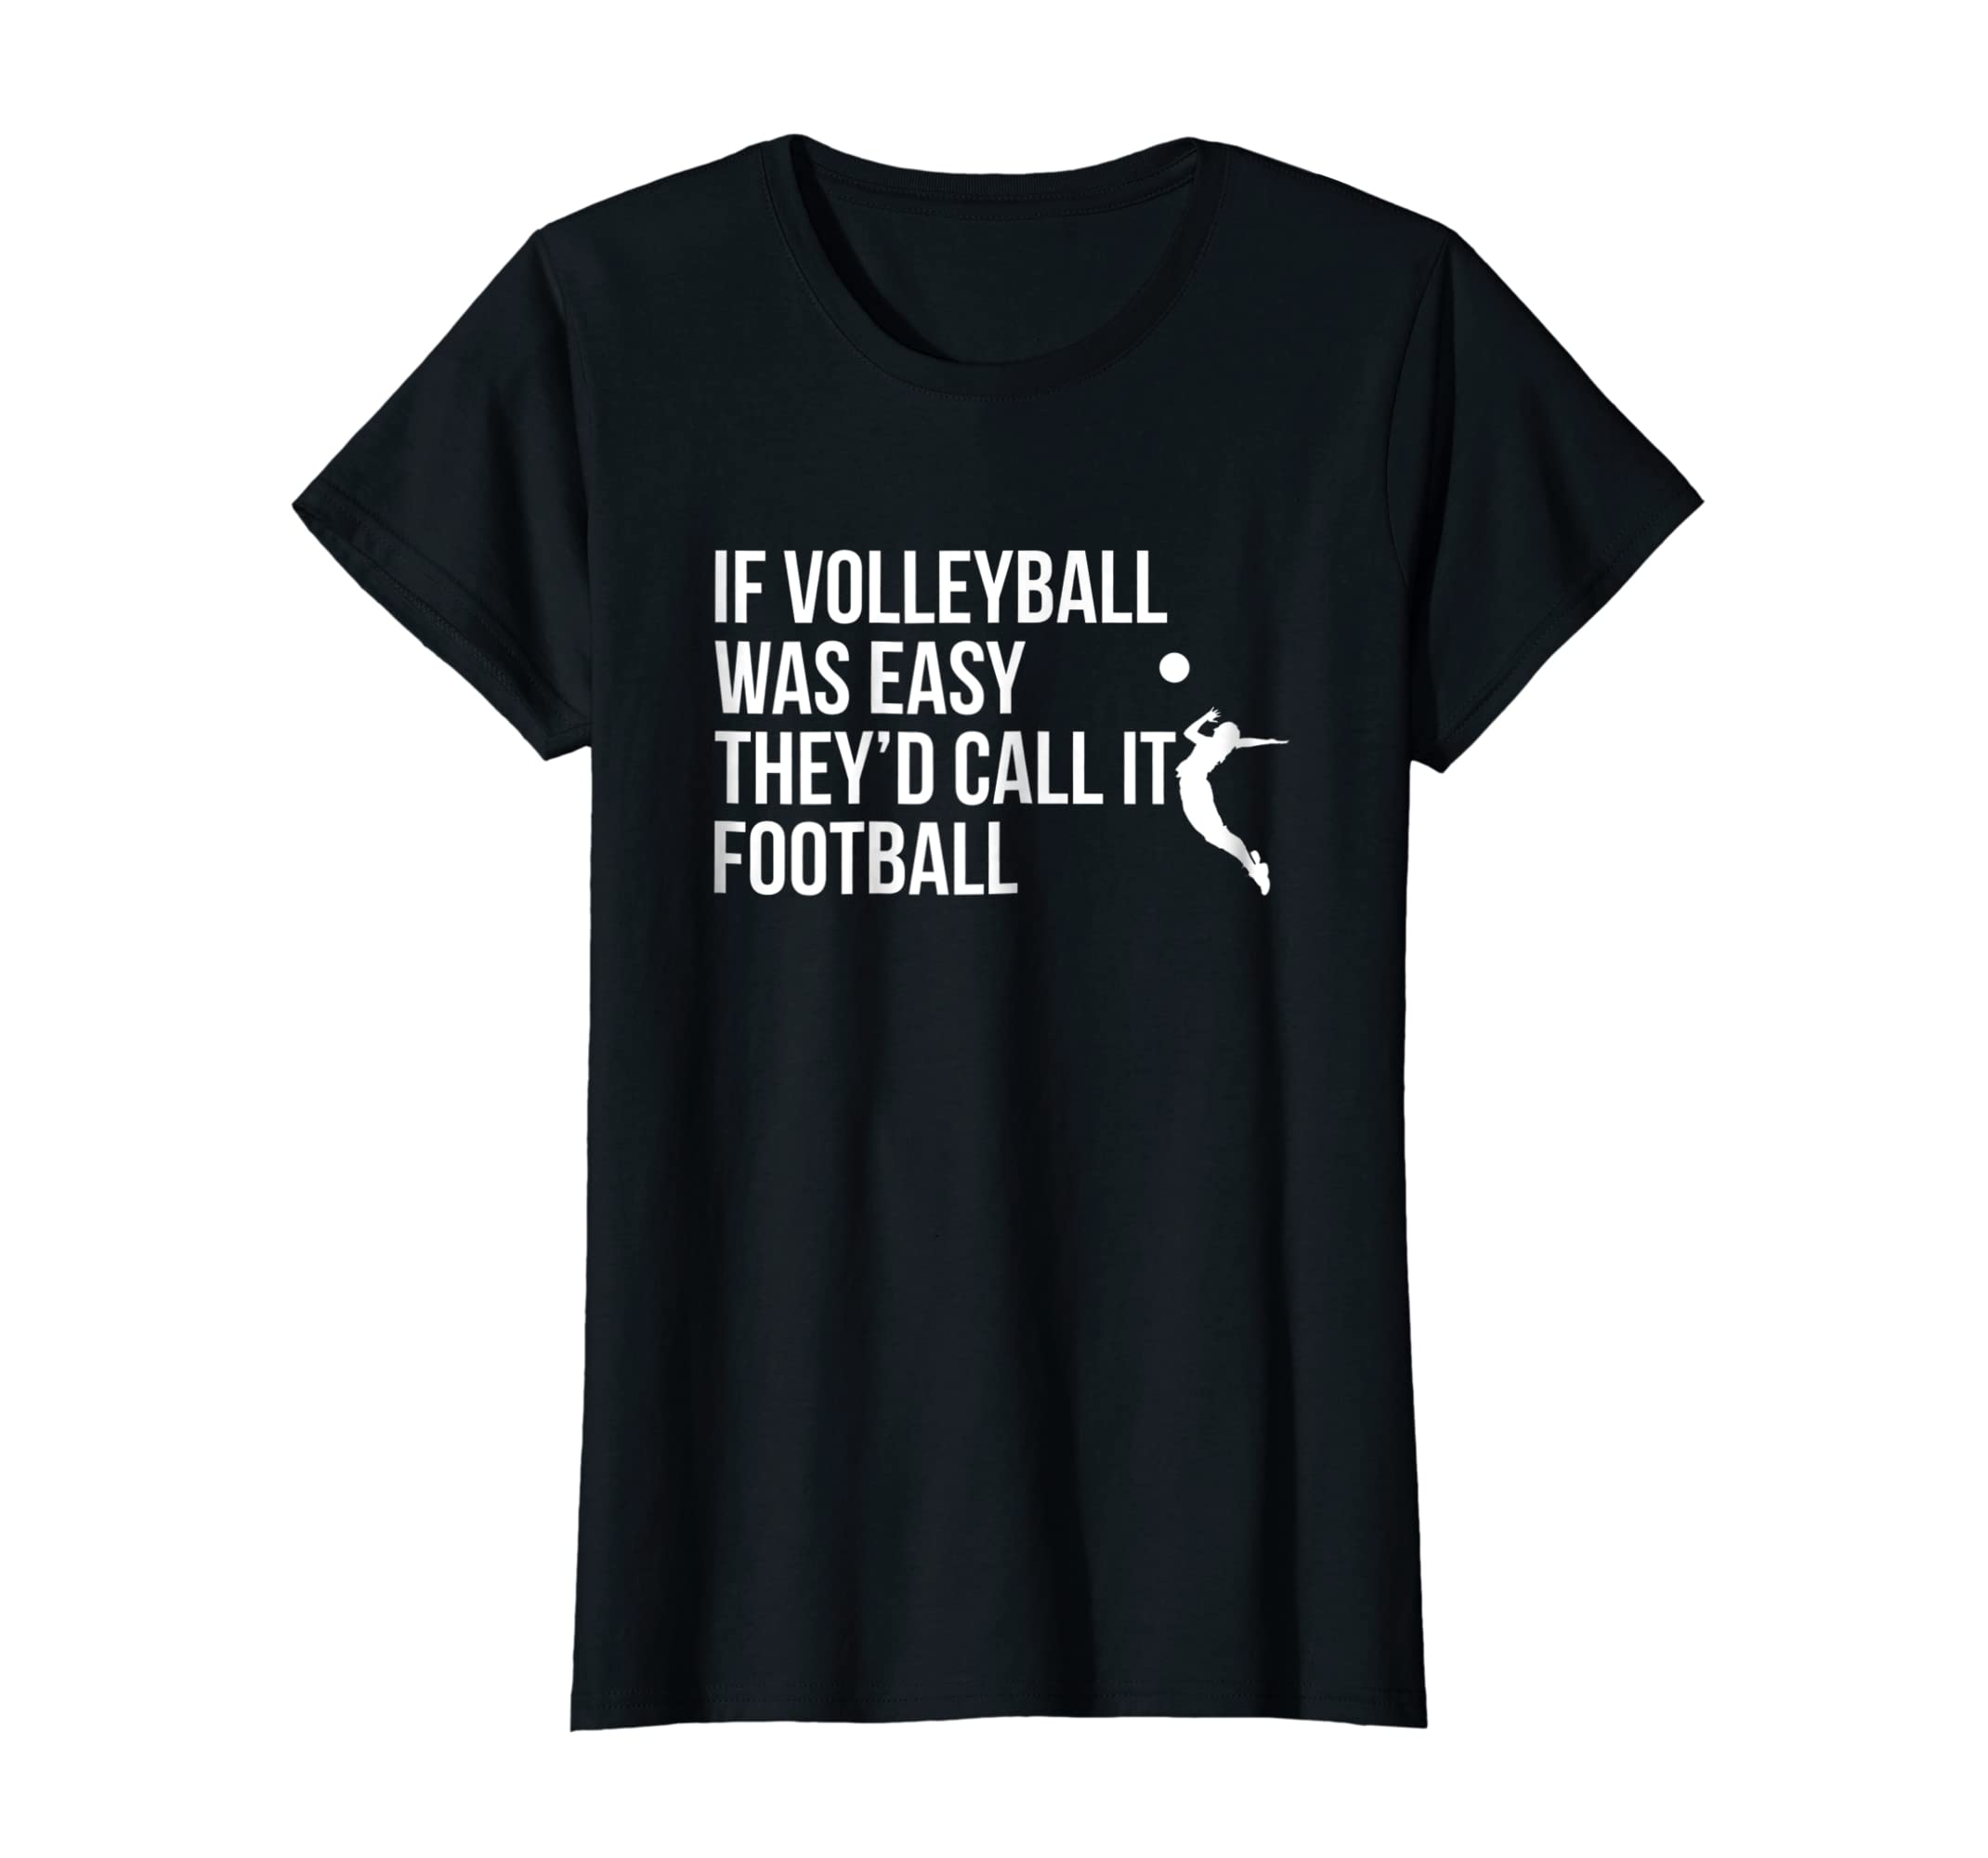 3431f6ef5 Amazon.com: Cute Funny Volleyball T-Shirt For Teen Girls and Women: Clothing